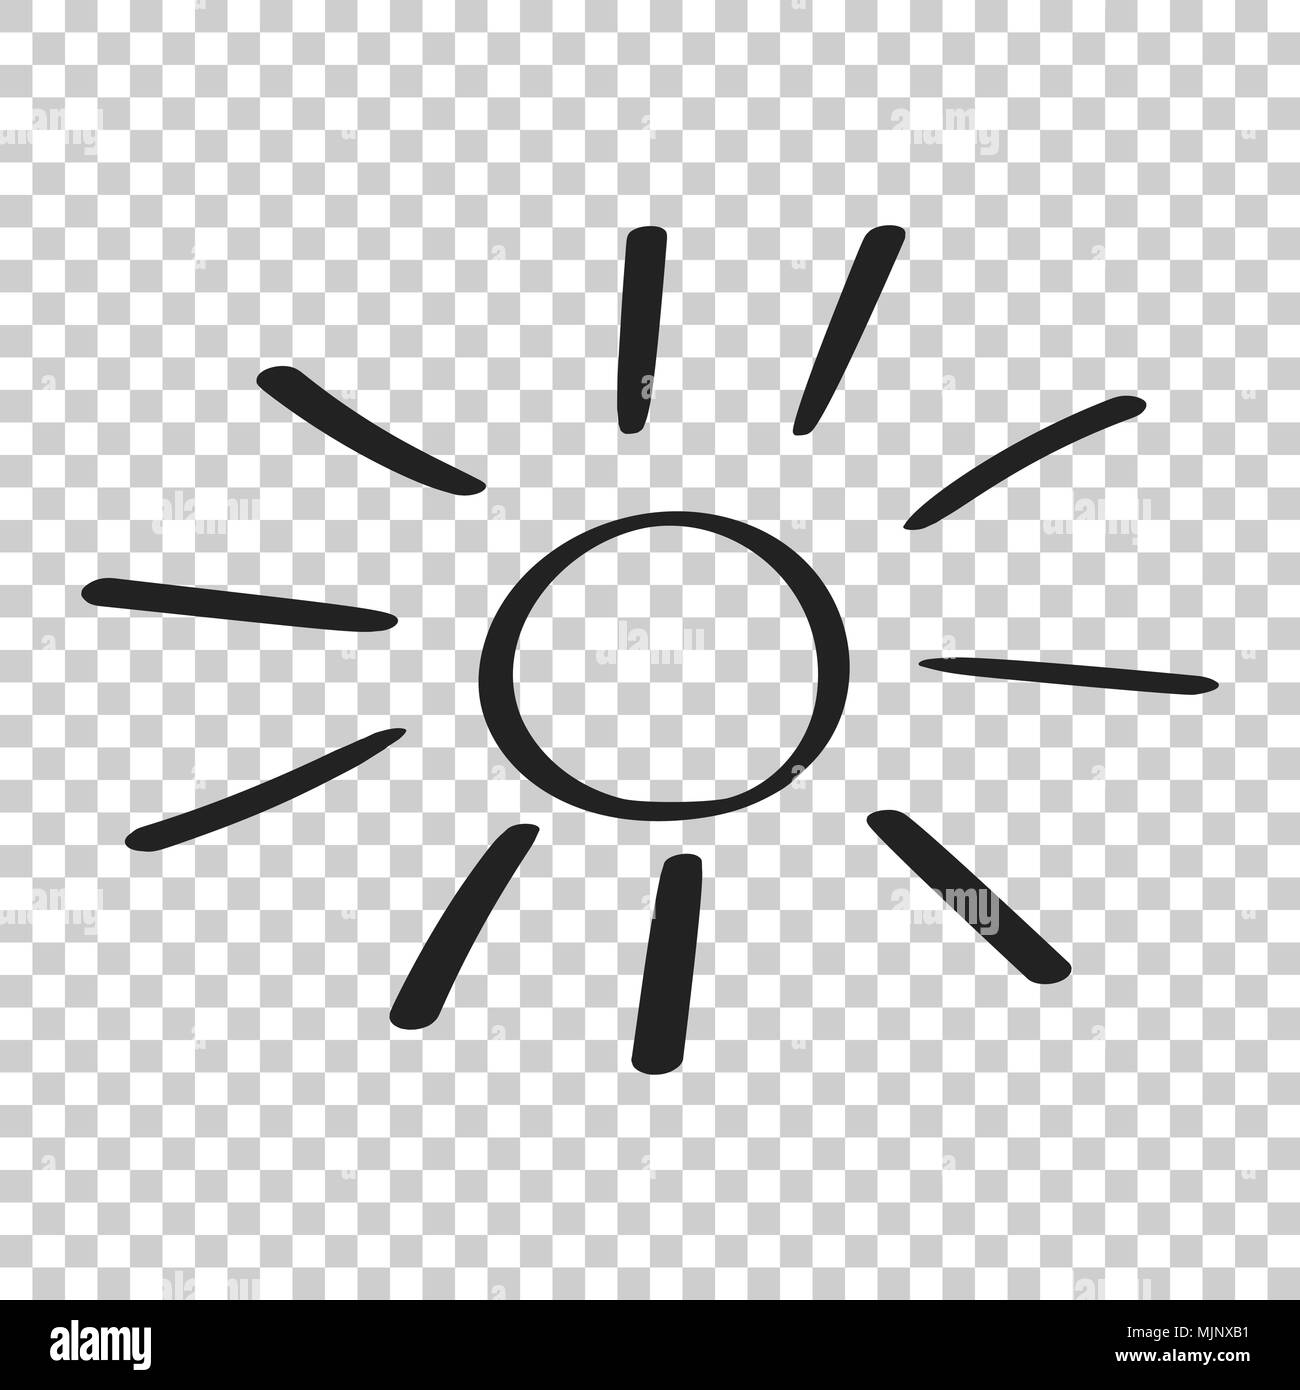 Transparent Background Hand Drawn Sun Vector Icon Sketch Doodle Illustration